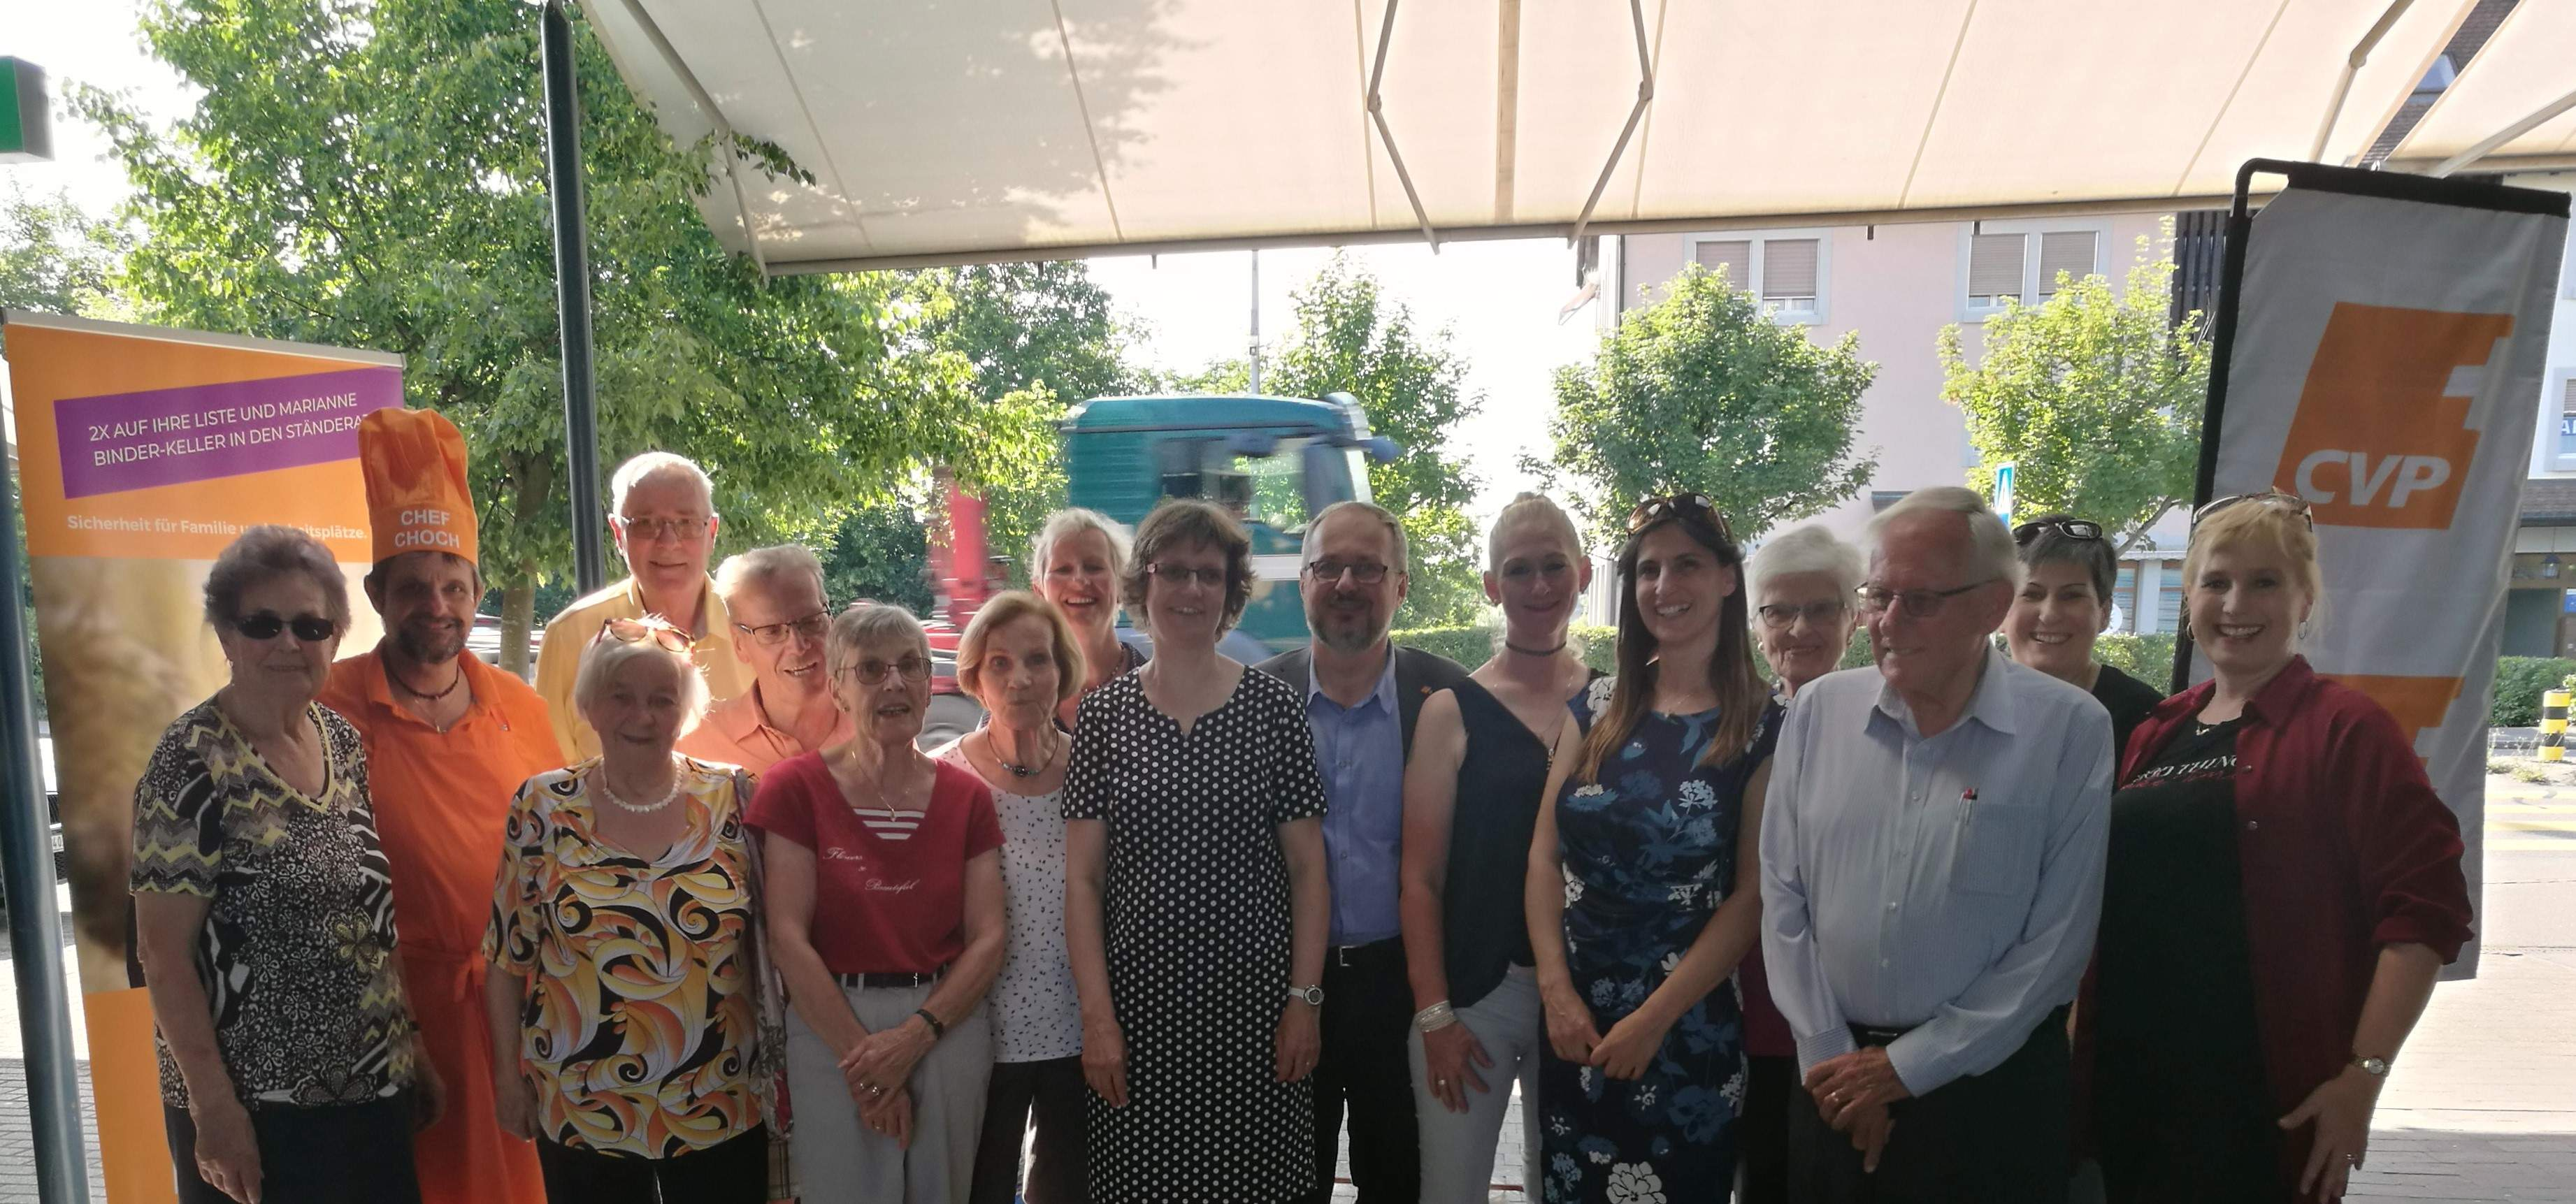 CVP Risotto Anlass am 19. Juni in Stein